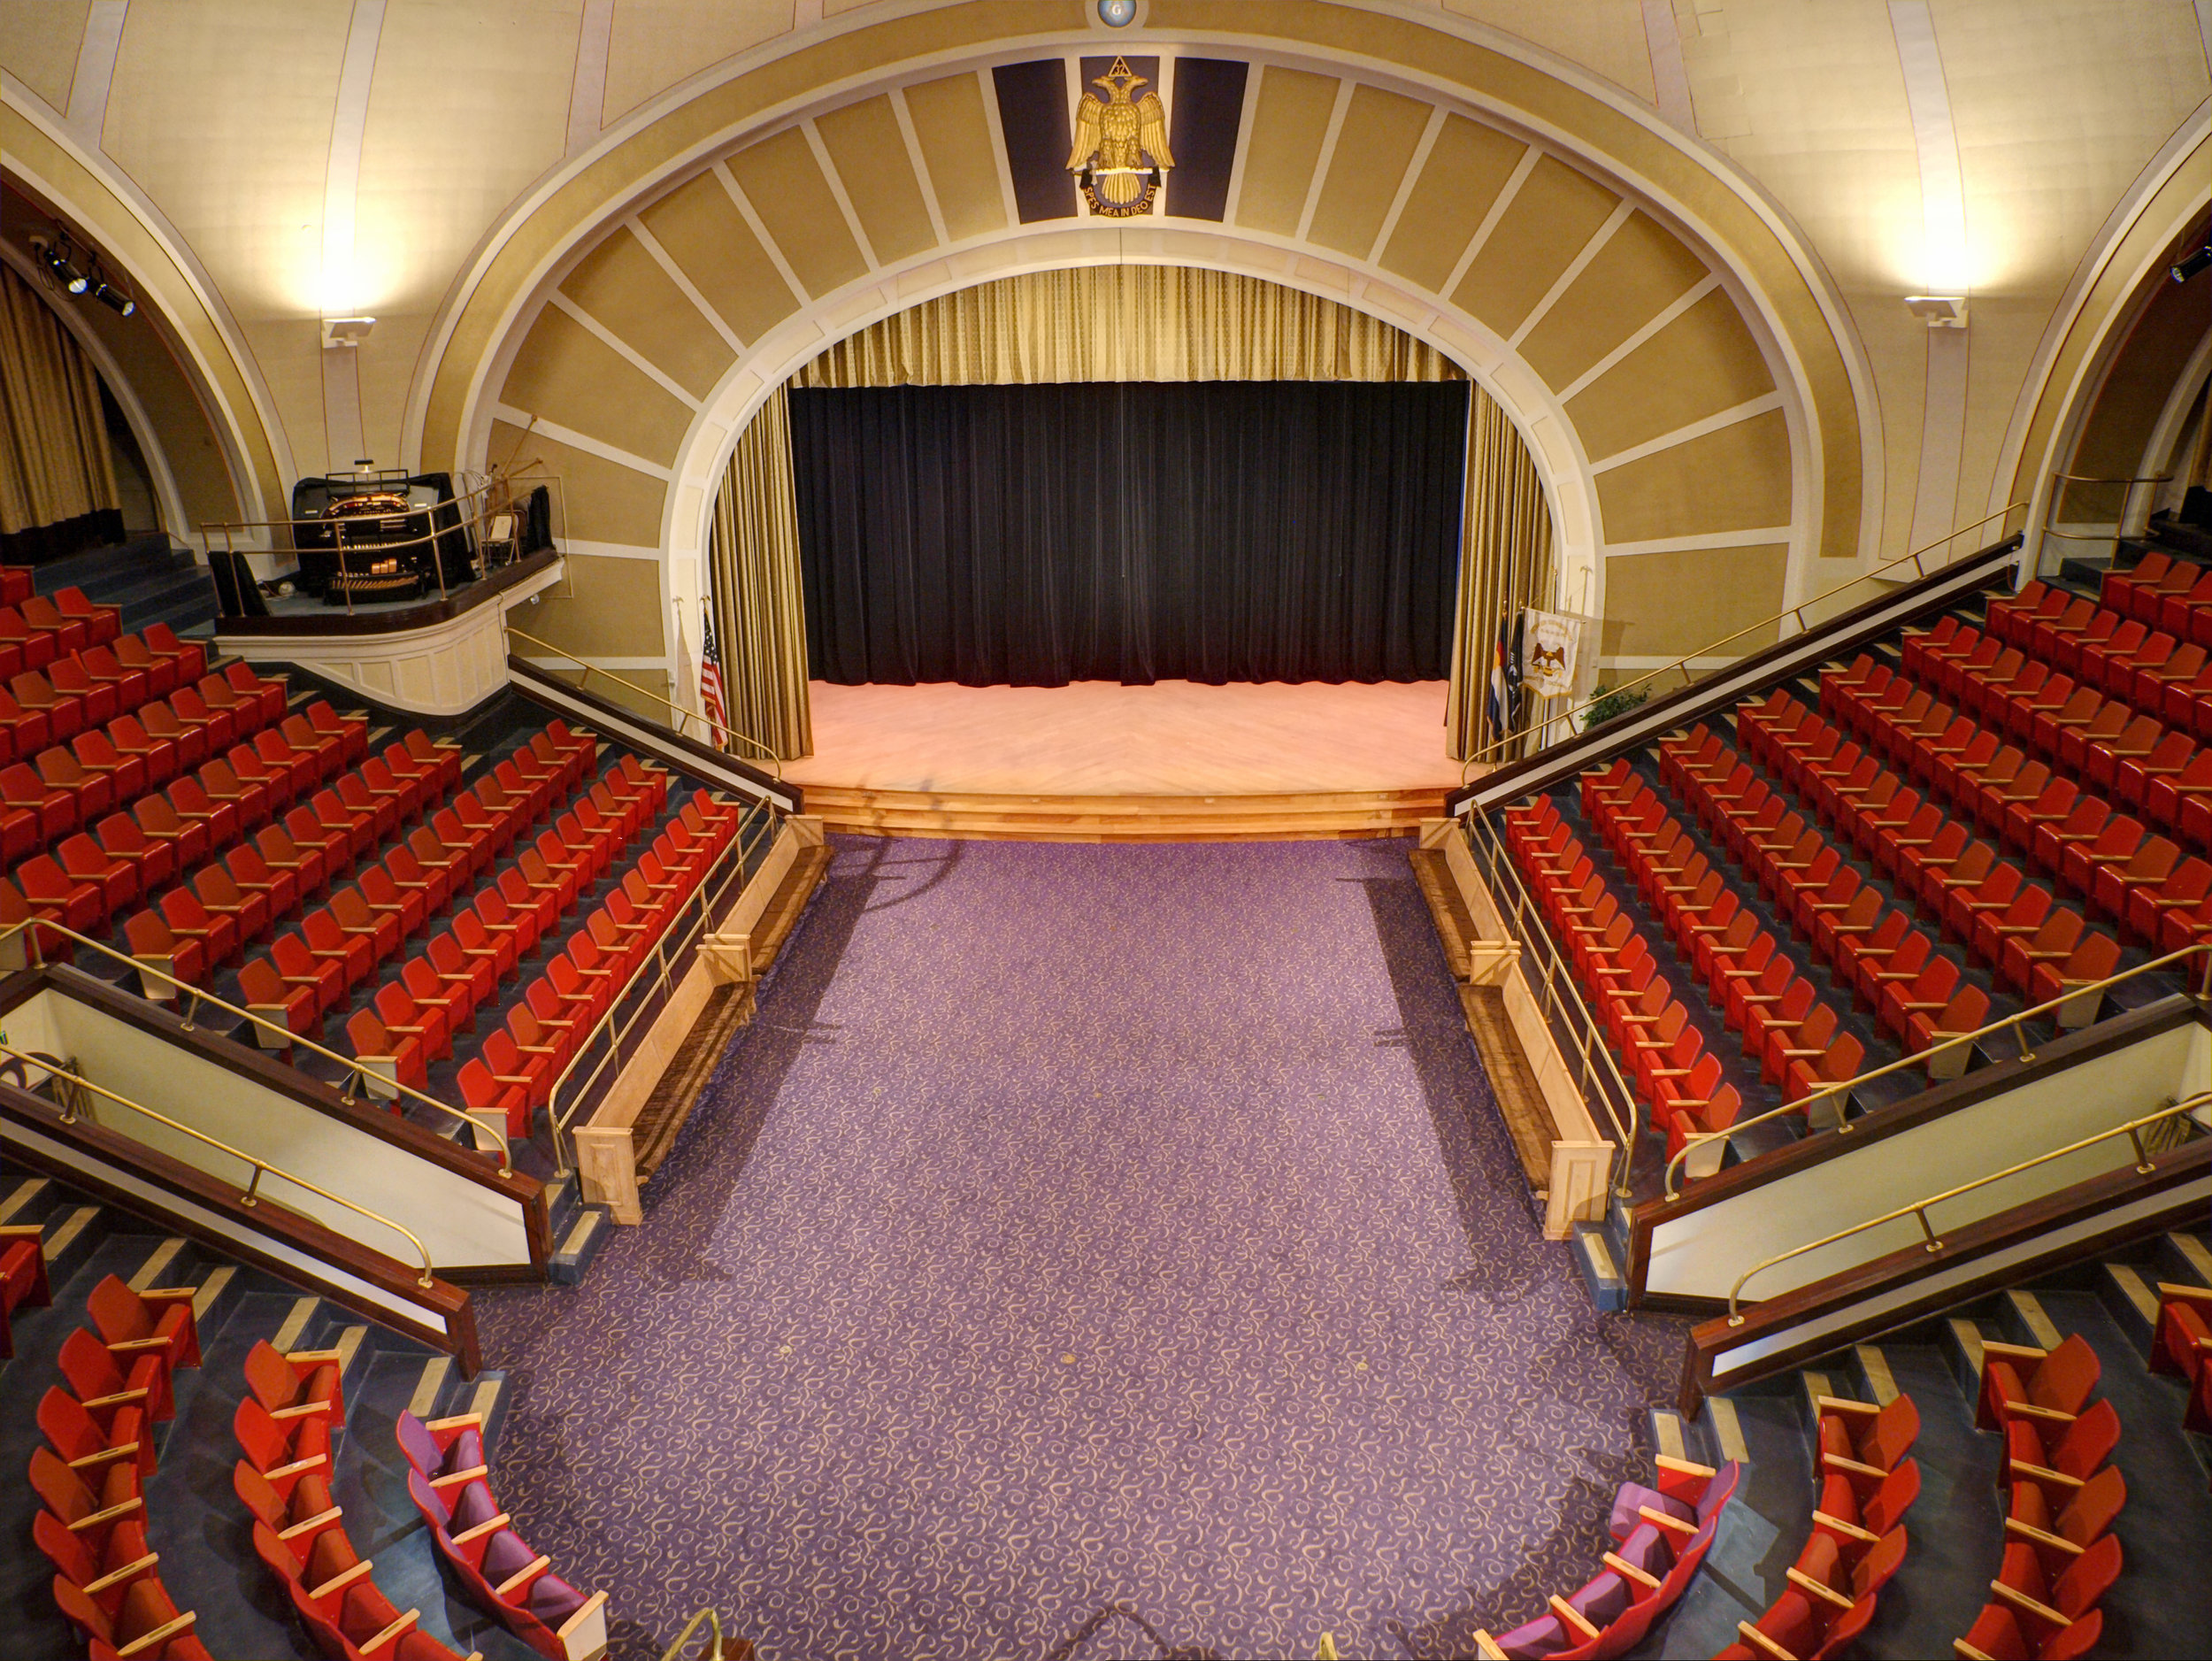 Aud10.Balcony.View.Sides.Stage-14 002.jpg